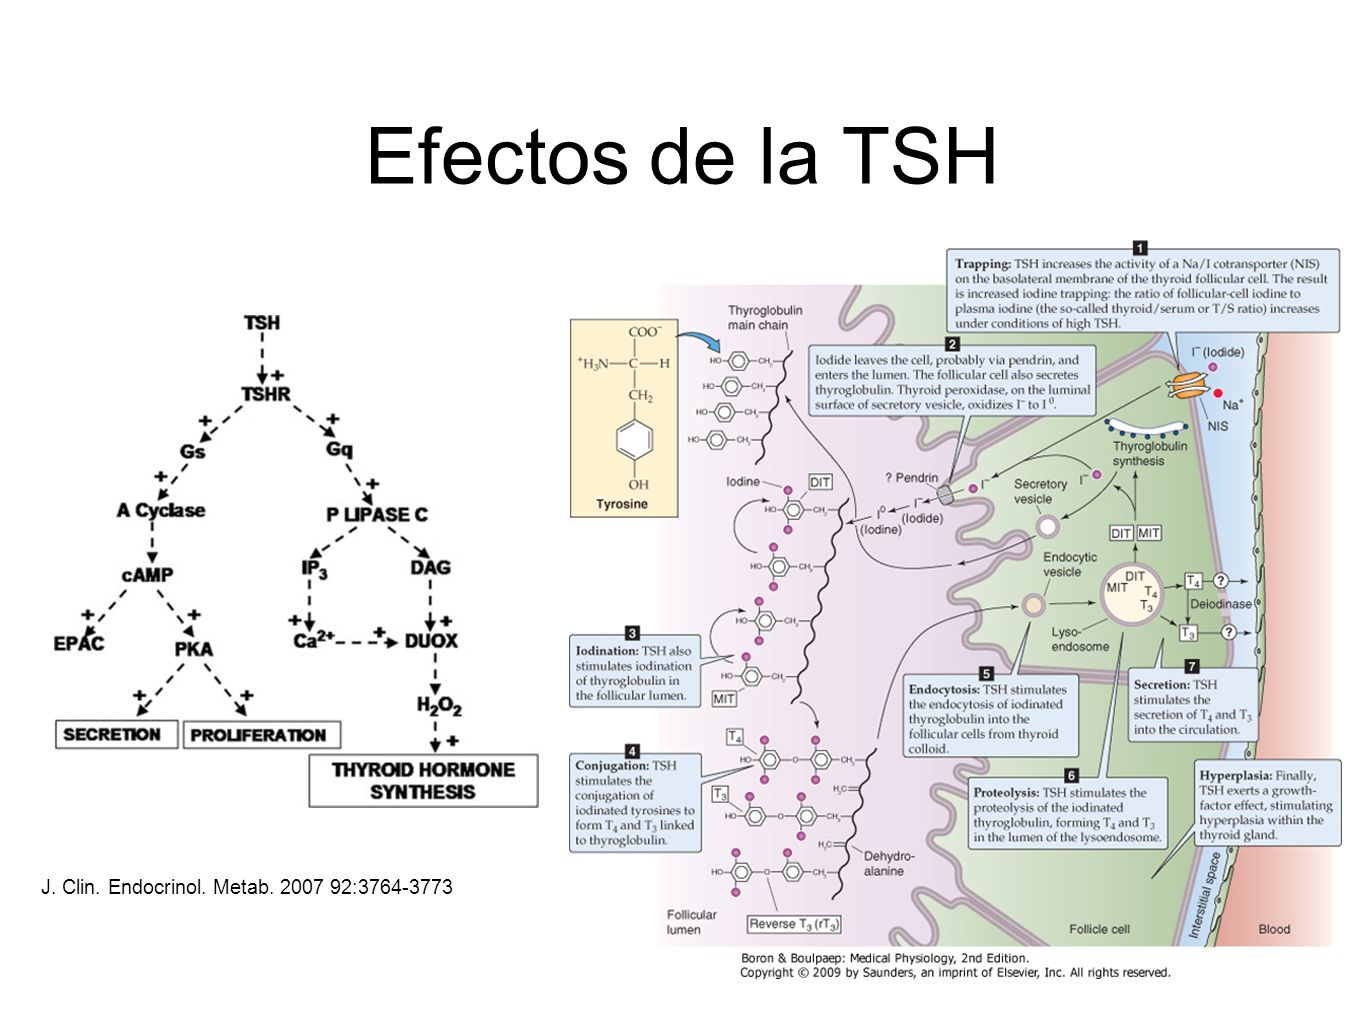 Efectos de la TSH J. Clin. Endocrinol. Metab. 2007 92:3764-3773